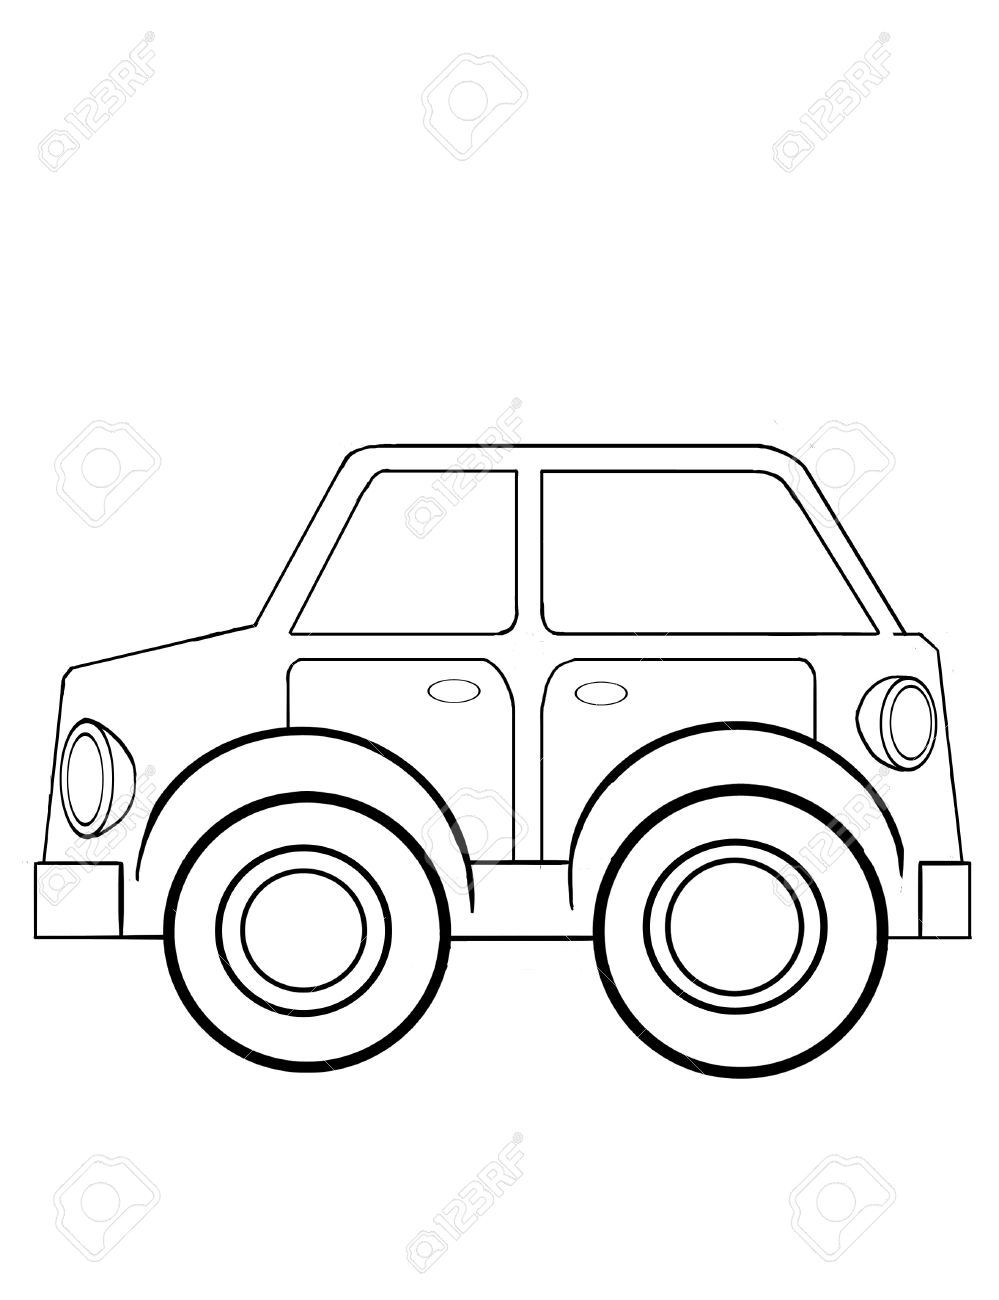 Contour Drawing Of The Toy Car For Coloring Stock Photo, Picture And ...